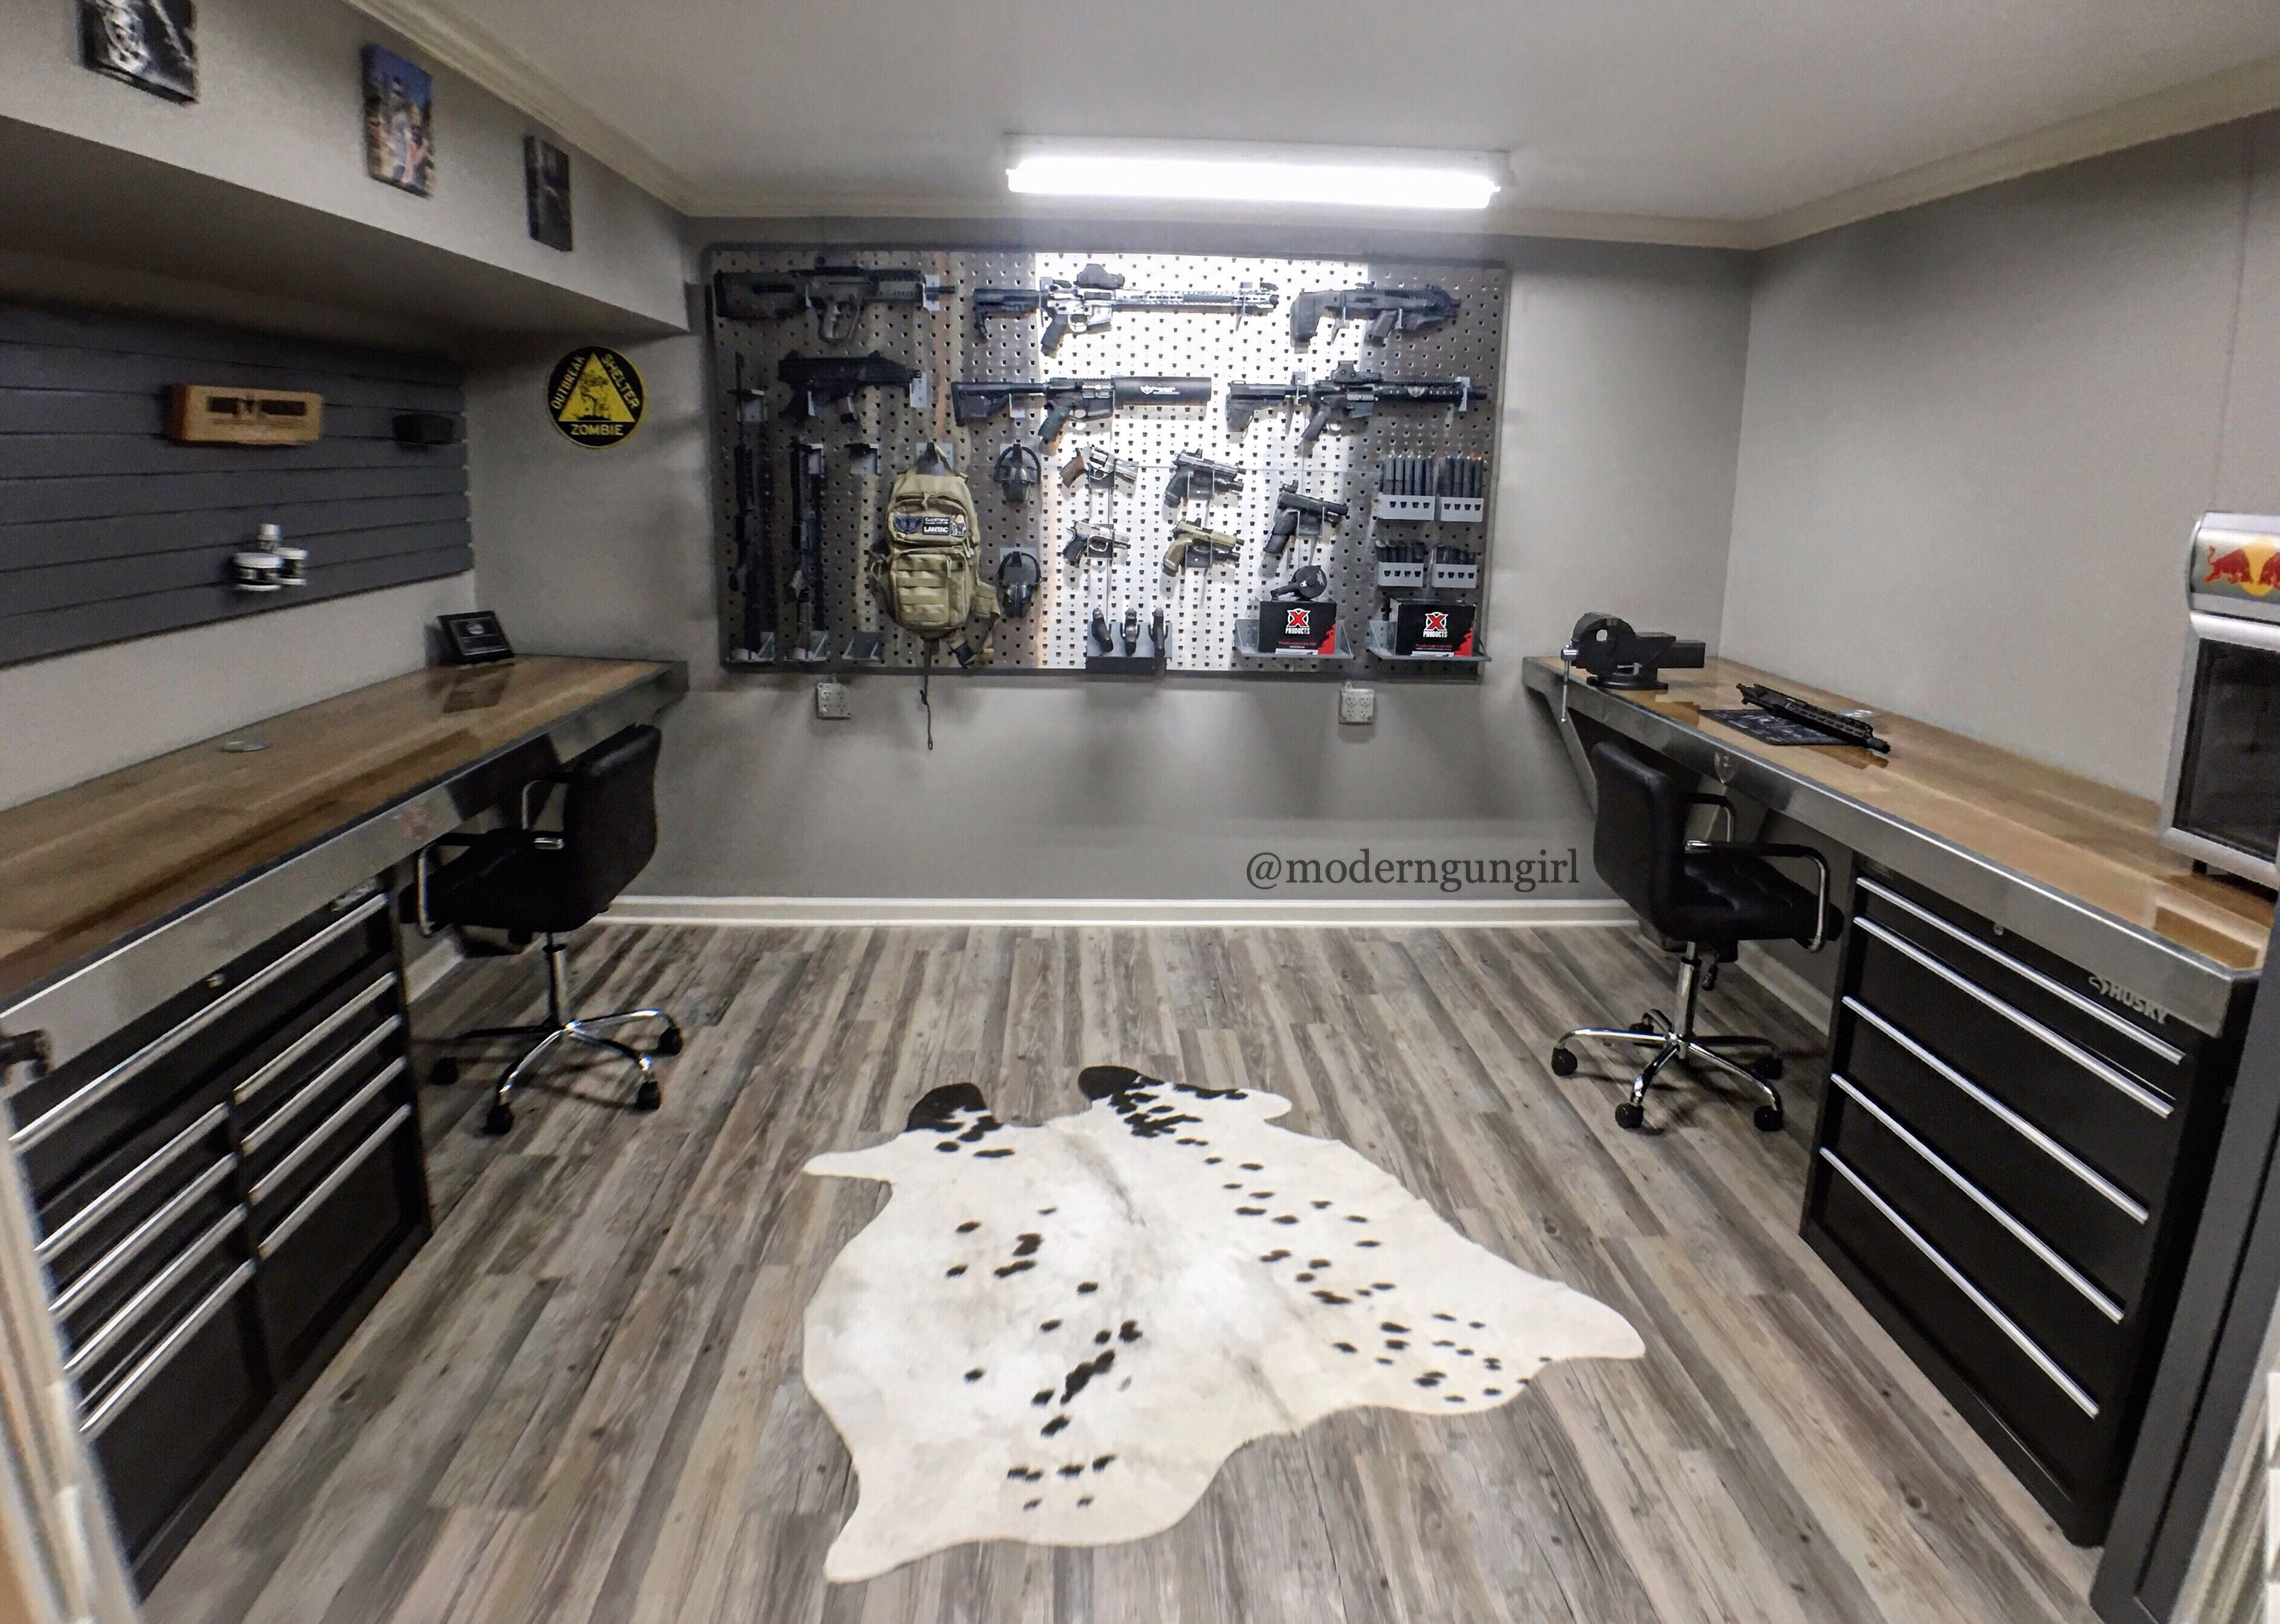 Man Cave Building Ideas : Building a dream gun room at home idea man men cave and